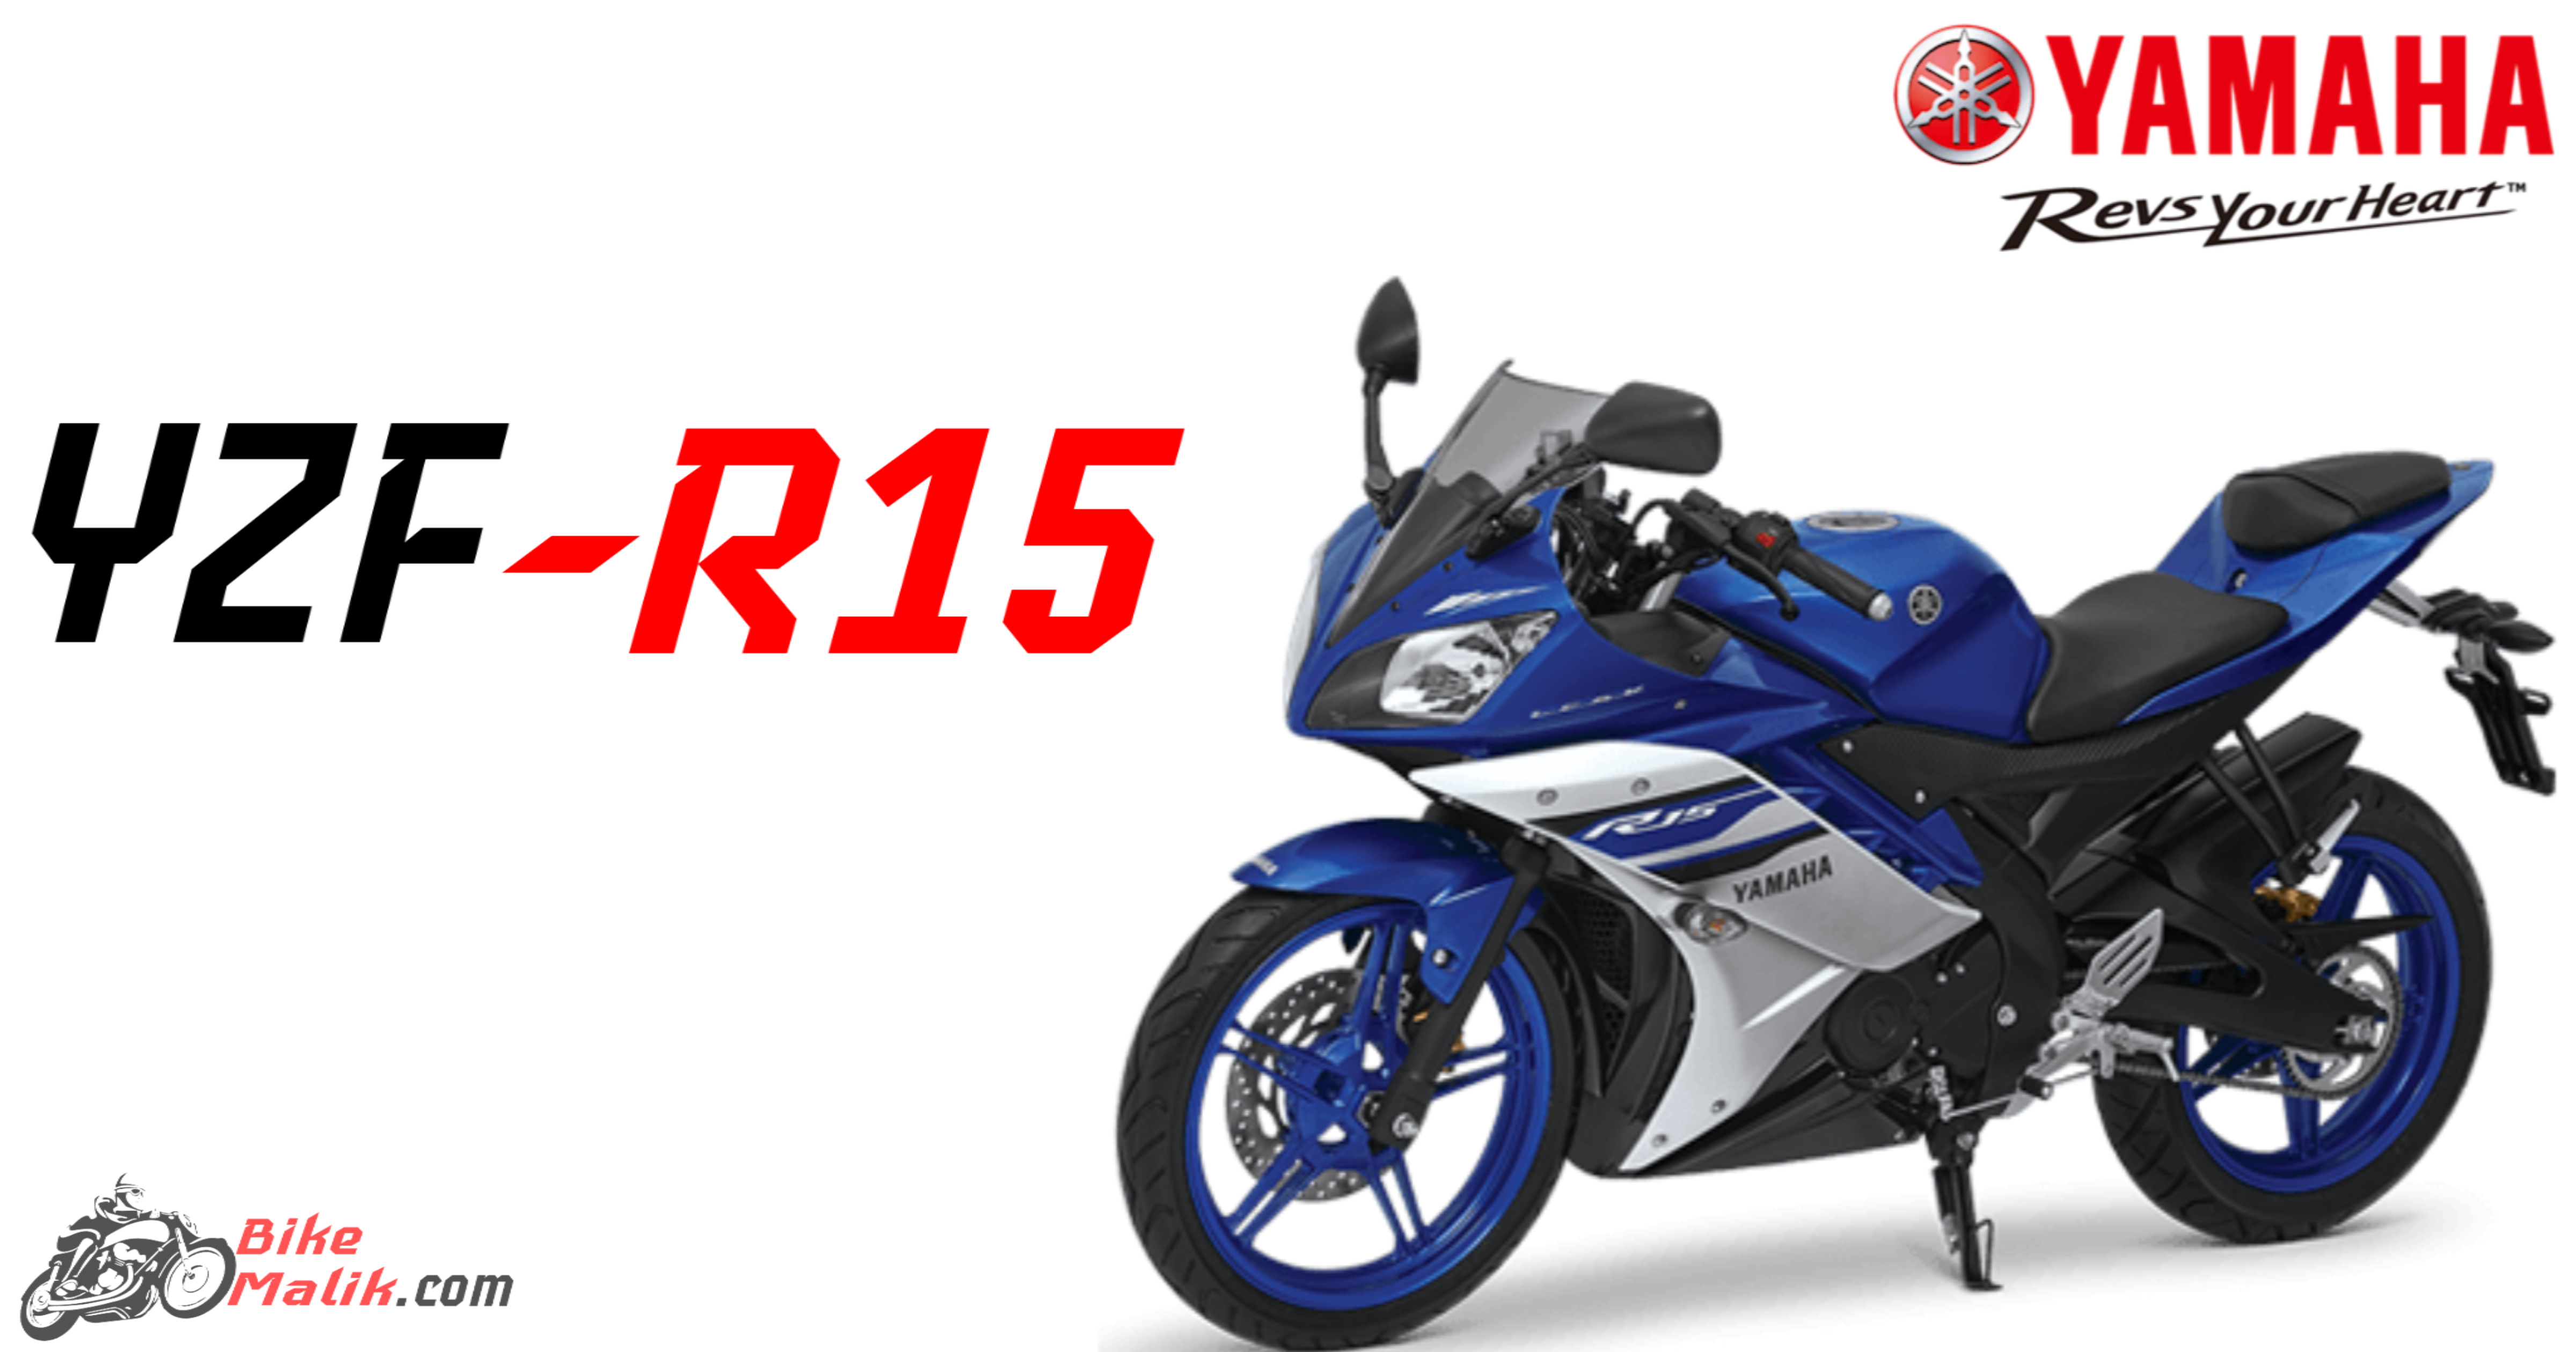 Yamaha YZF R15 Colors, Mileage, Specs, Features, Price & 360-View